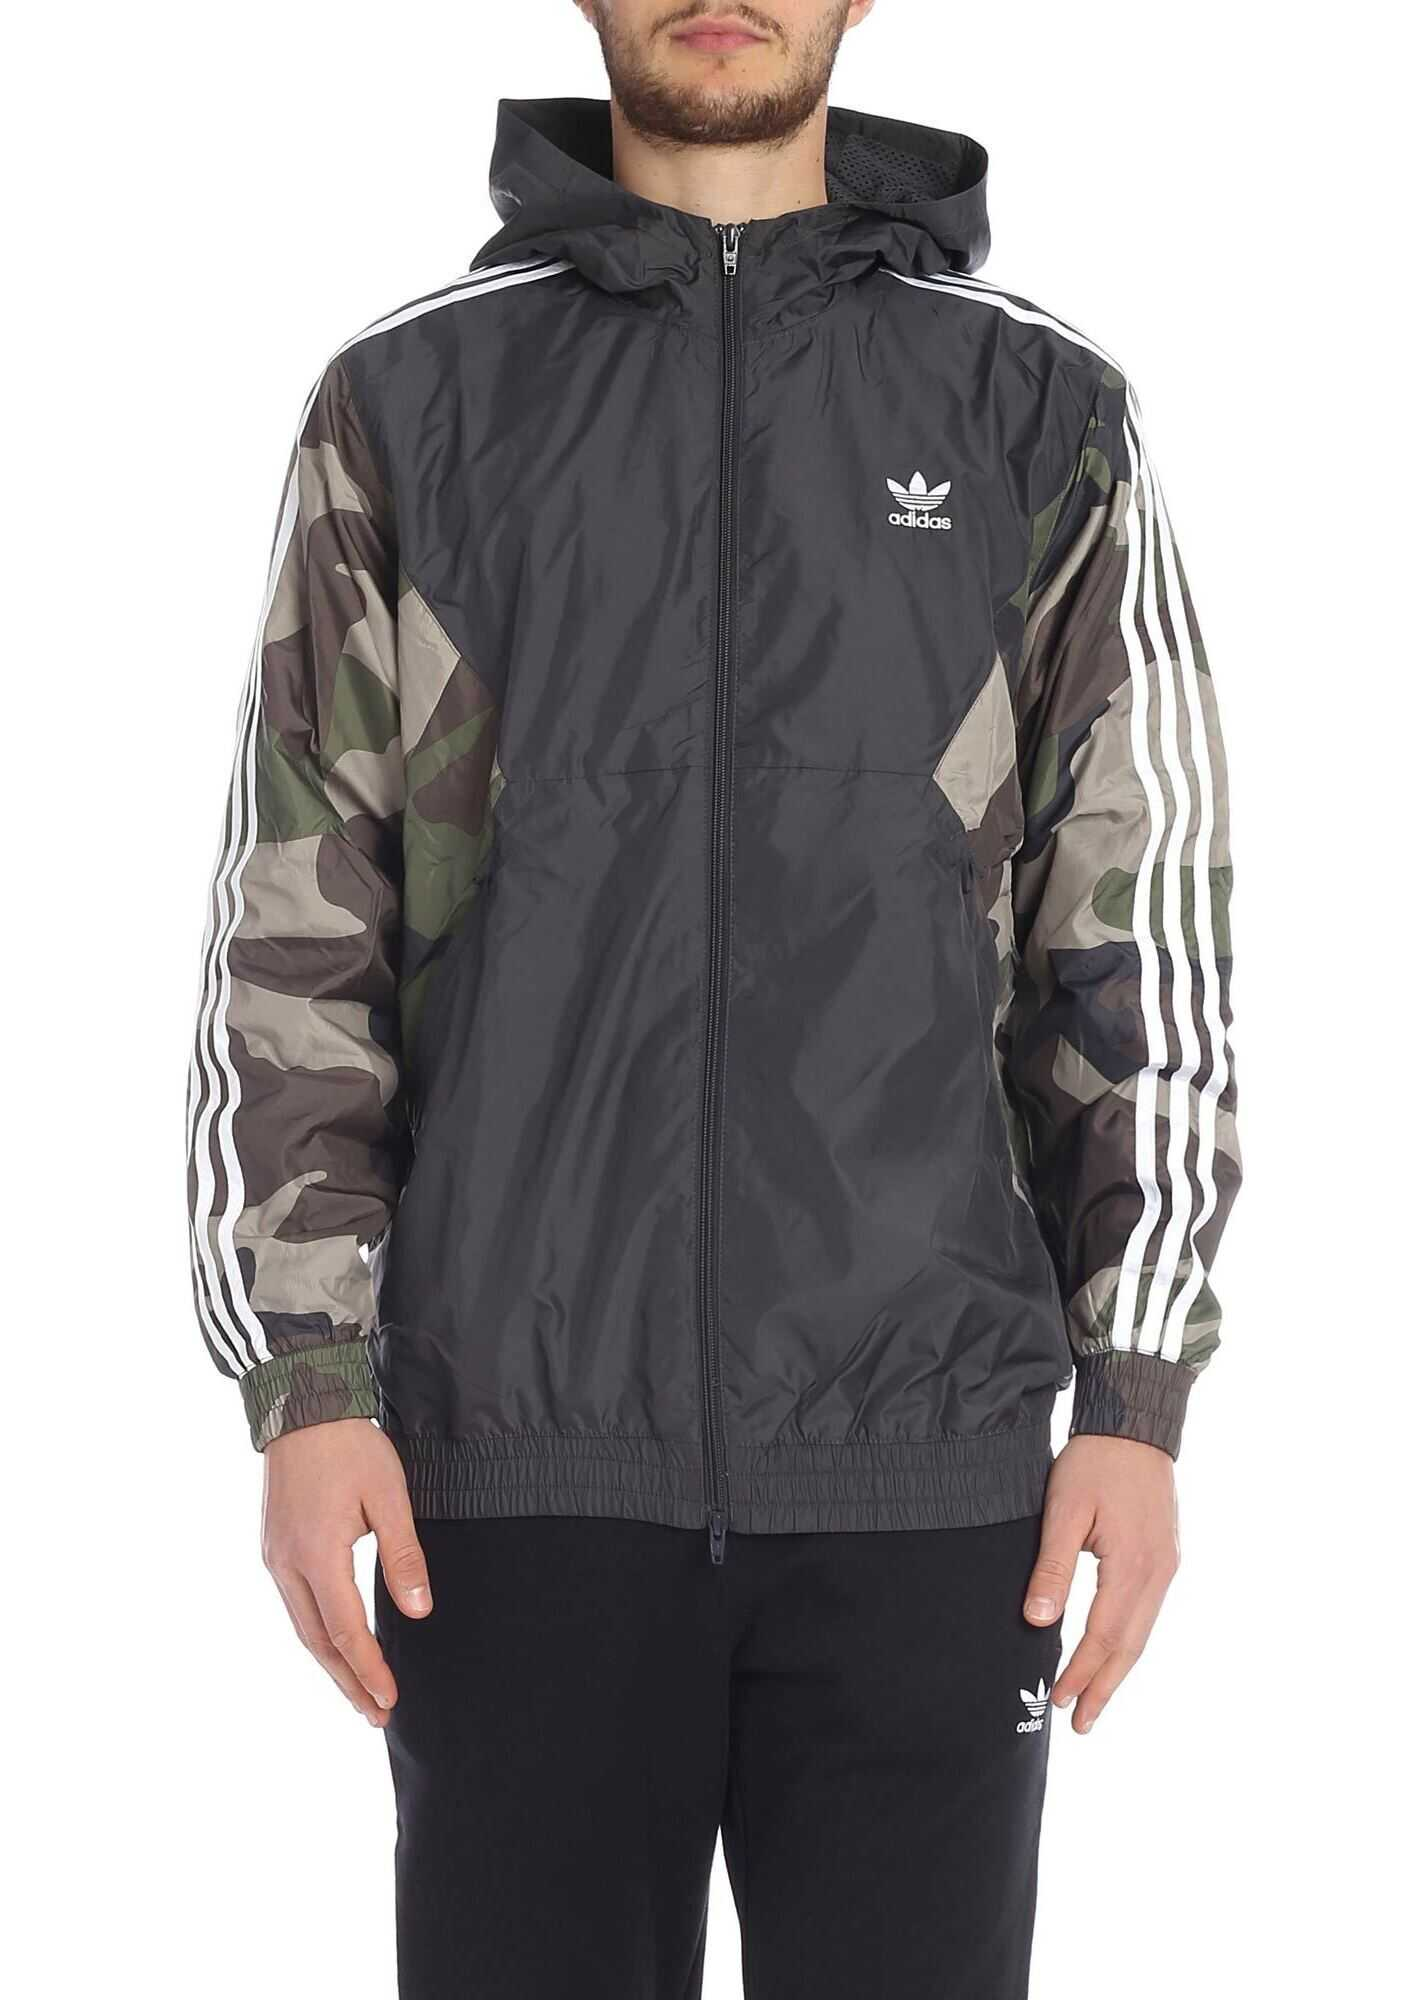 Adidas Originals Hooded Jacket In Gray And Camo